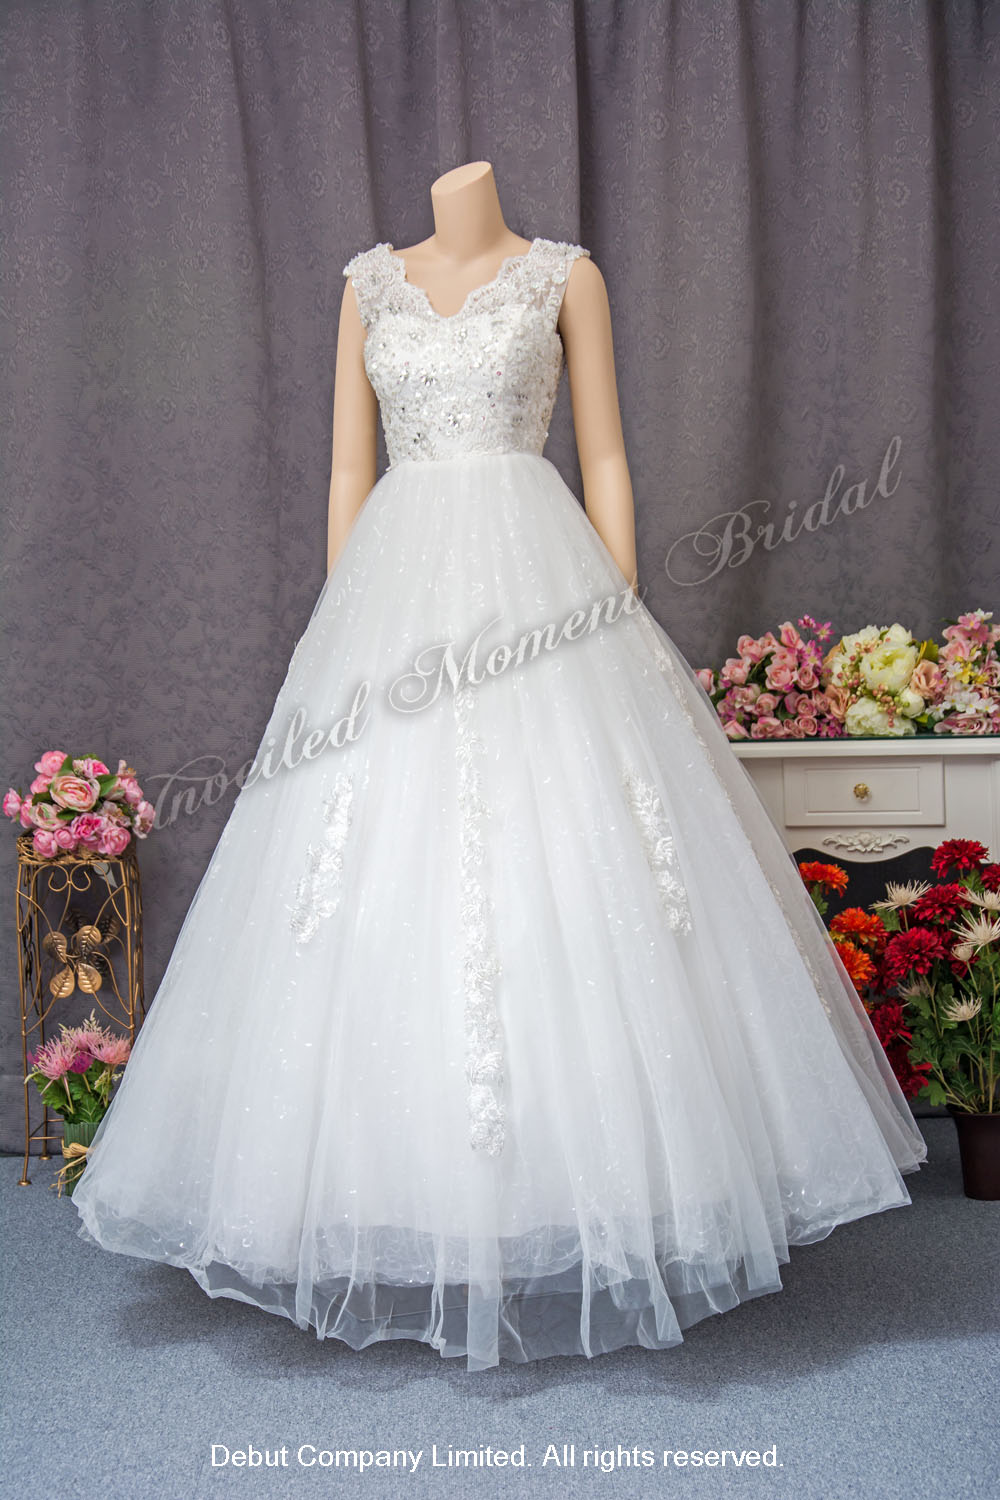 Strapless, lace appliques embellishments, Wedding Ball Gown with court train. 無袖款, 蕾絲釘珠, 花飾腰帶, 拖尾, 傘裙婚紗